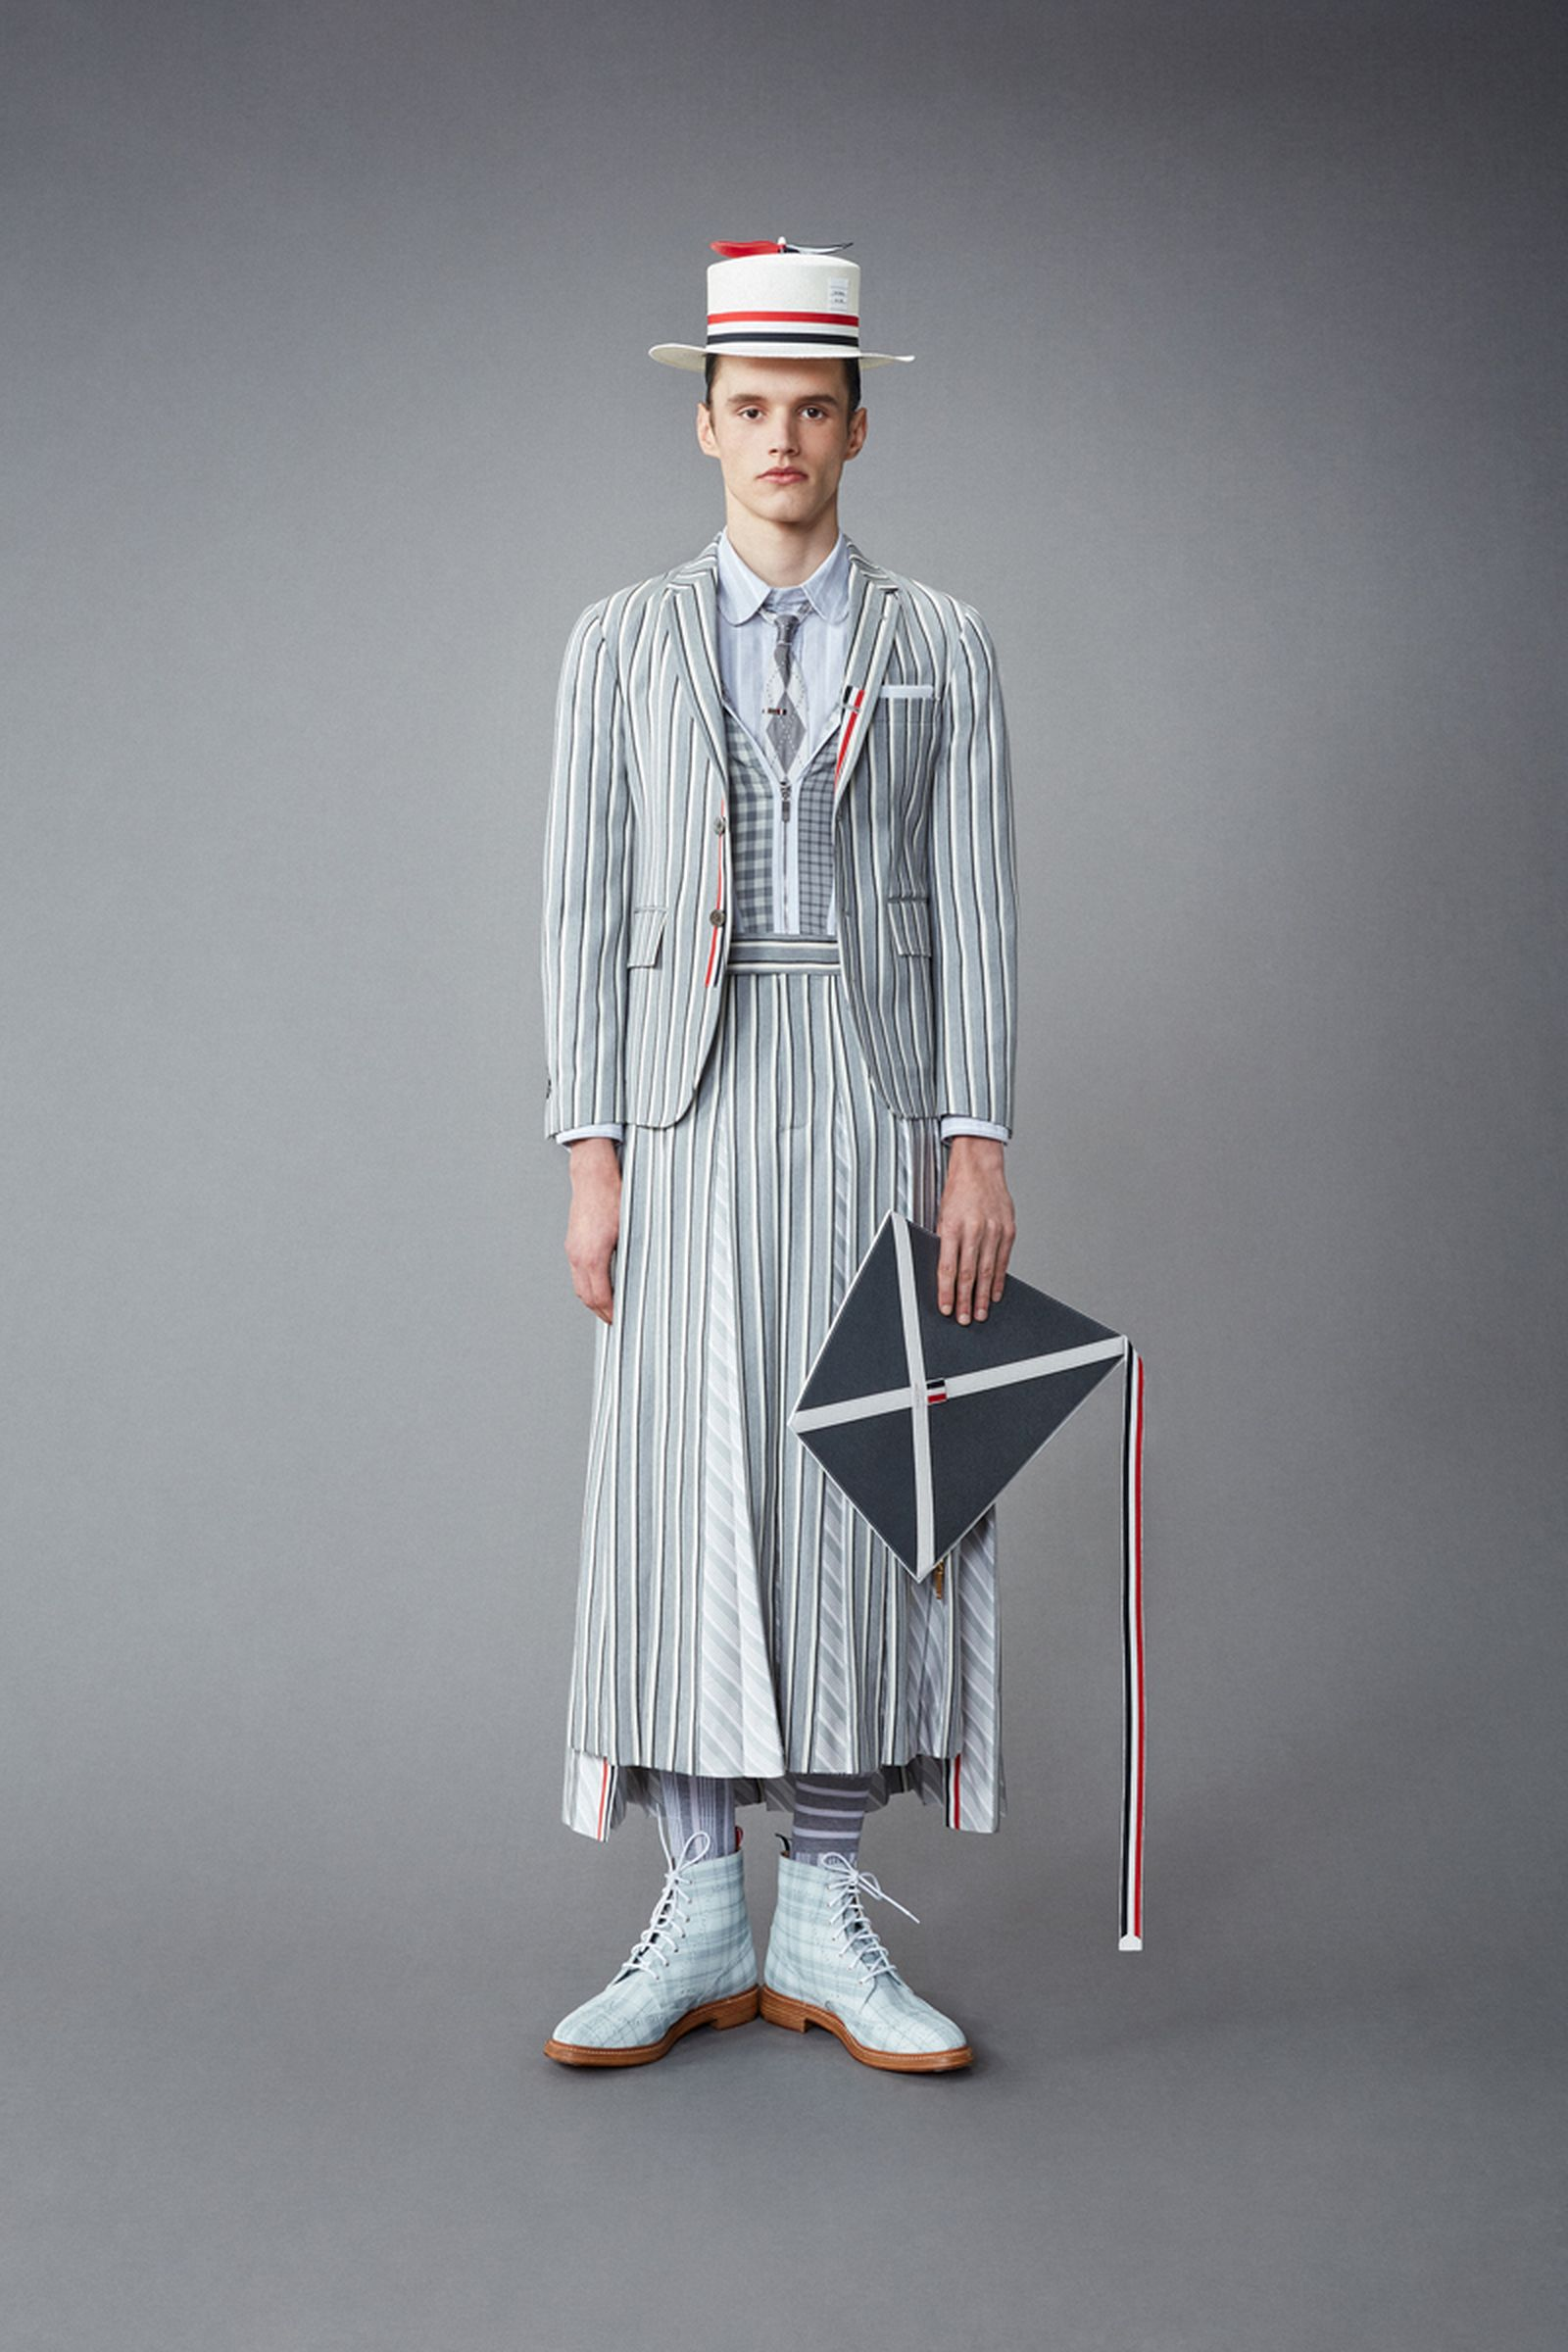 thom-browne-resort-2022-collection- (15)